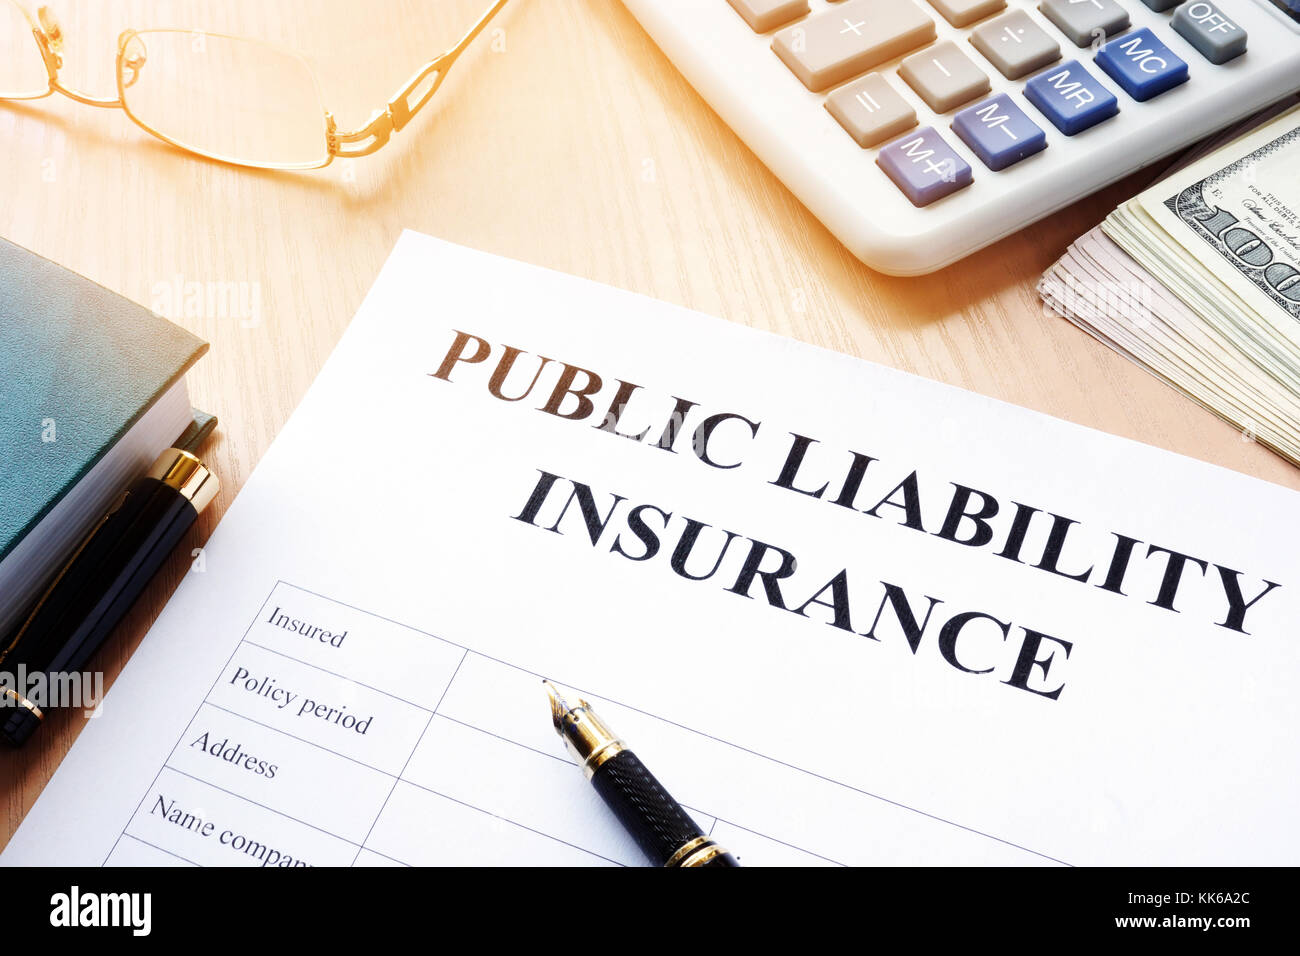 Public liability insurance policy on an office desk. - Stock Image